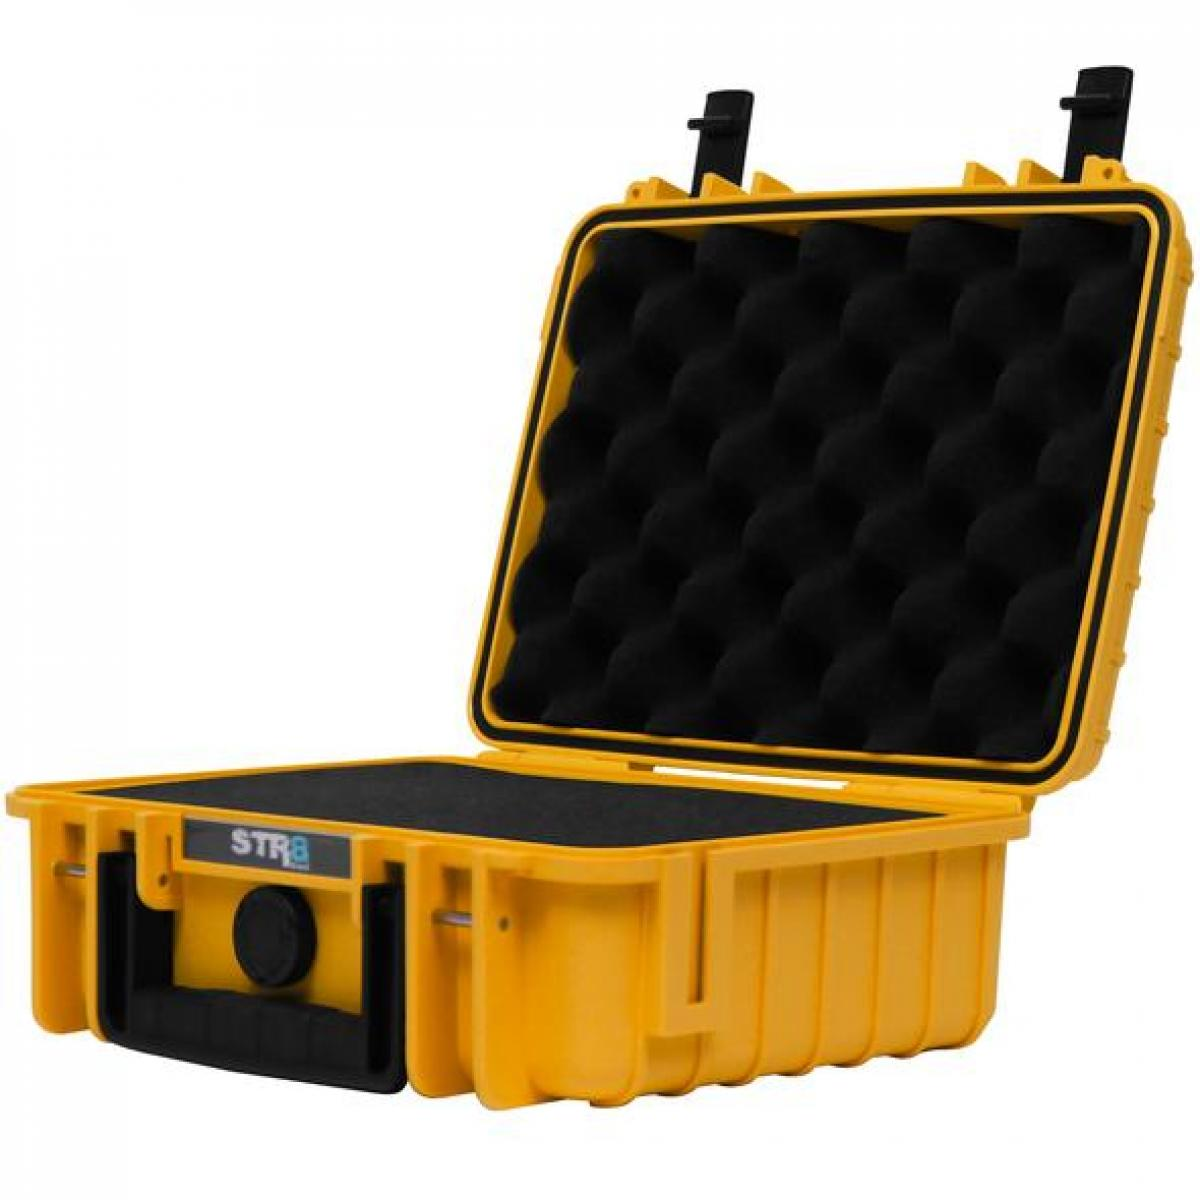 10inch STR8 Carrying Case with 2 Layer Pre-Cut Foam